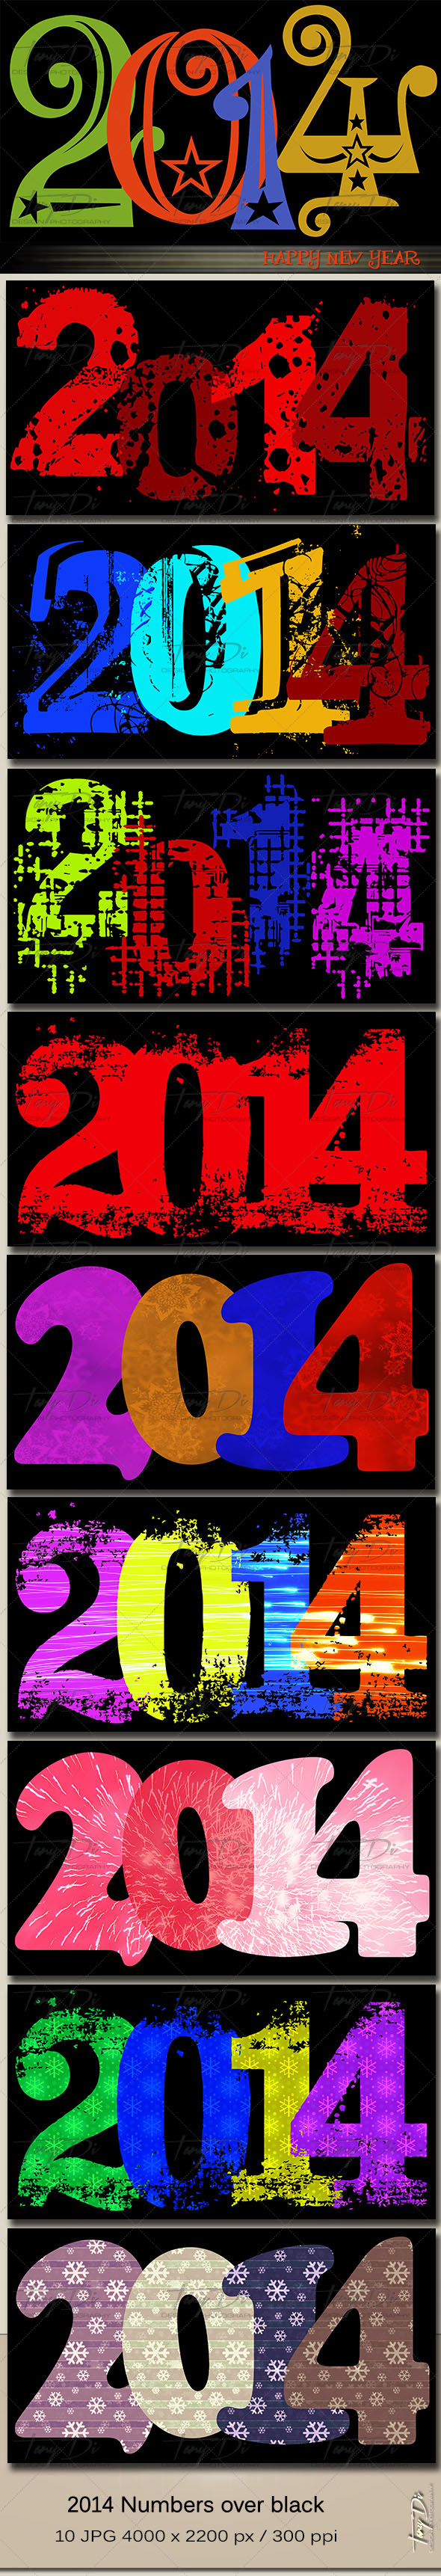 2014 numbers on black background